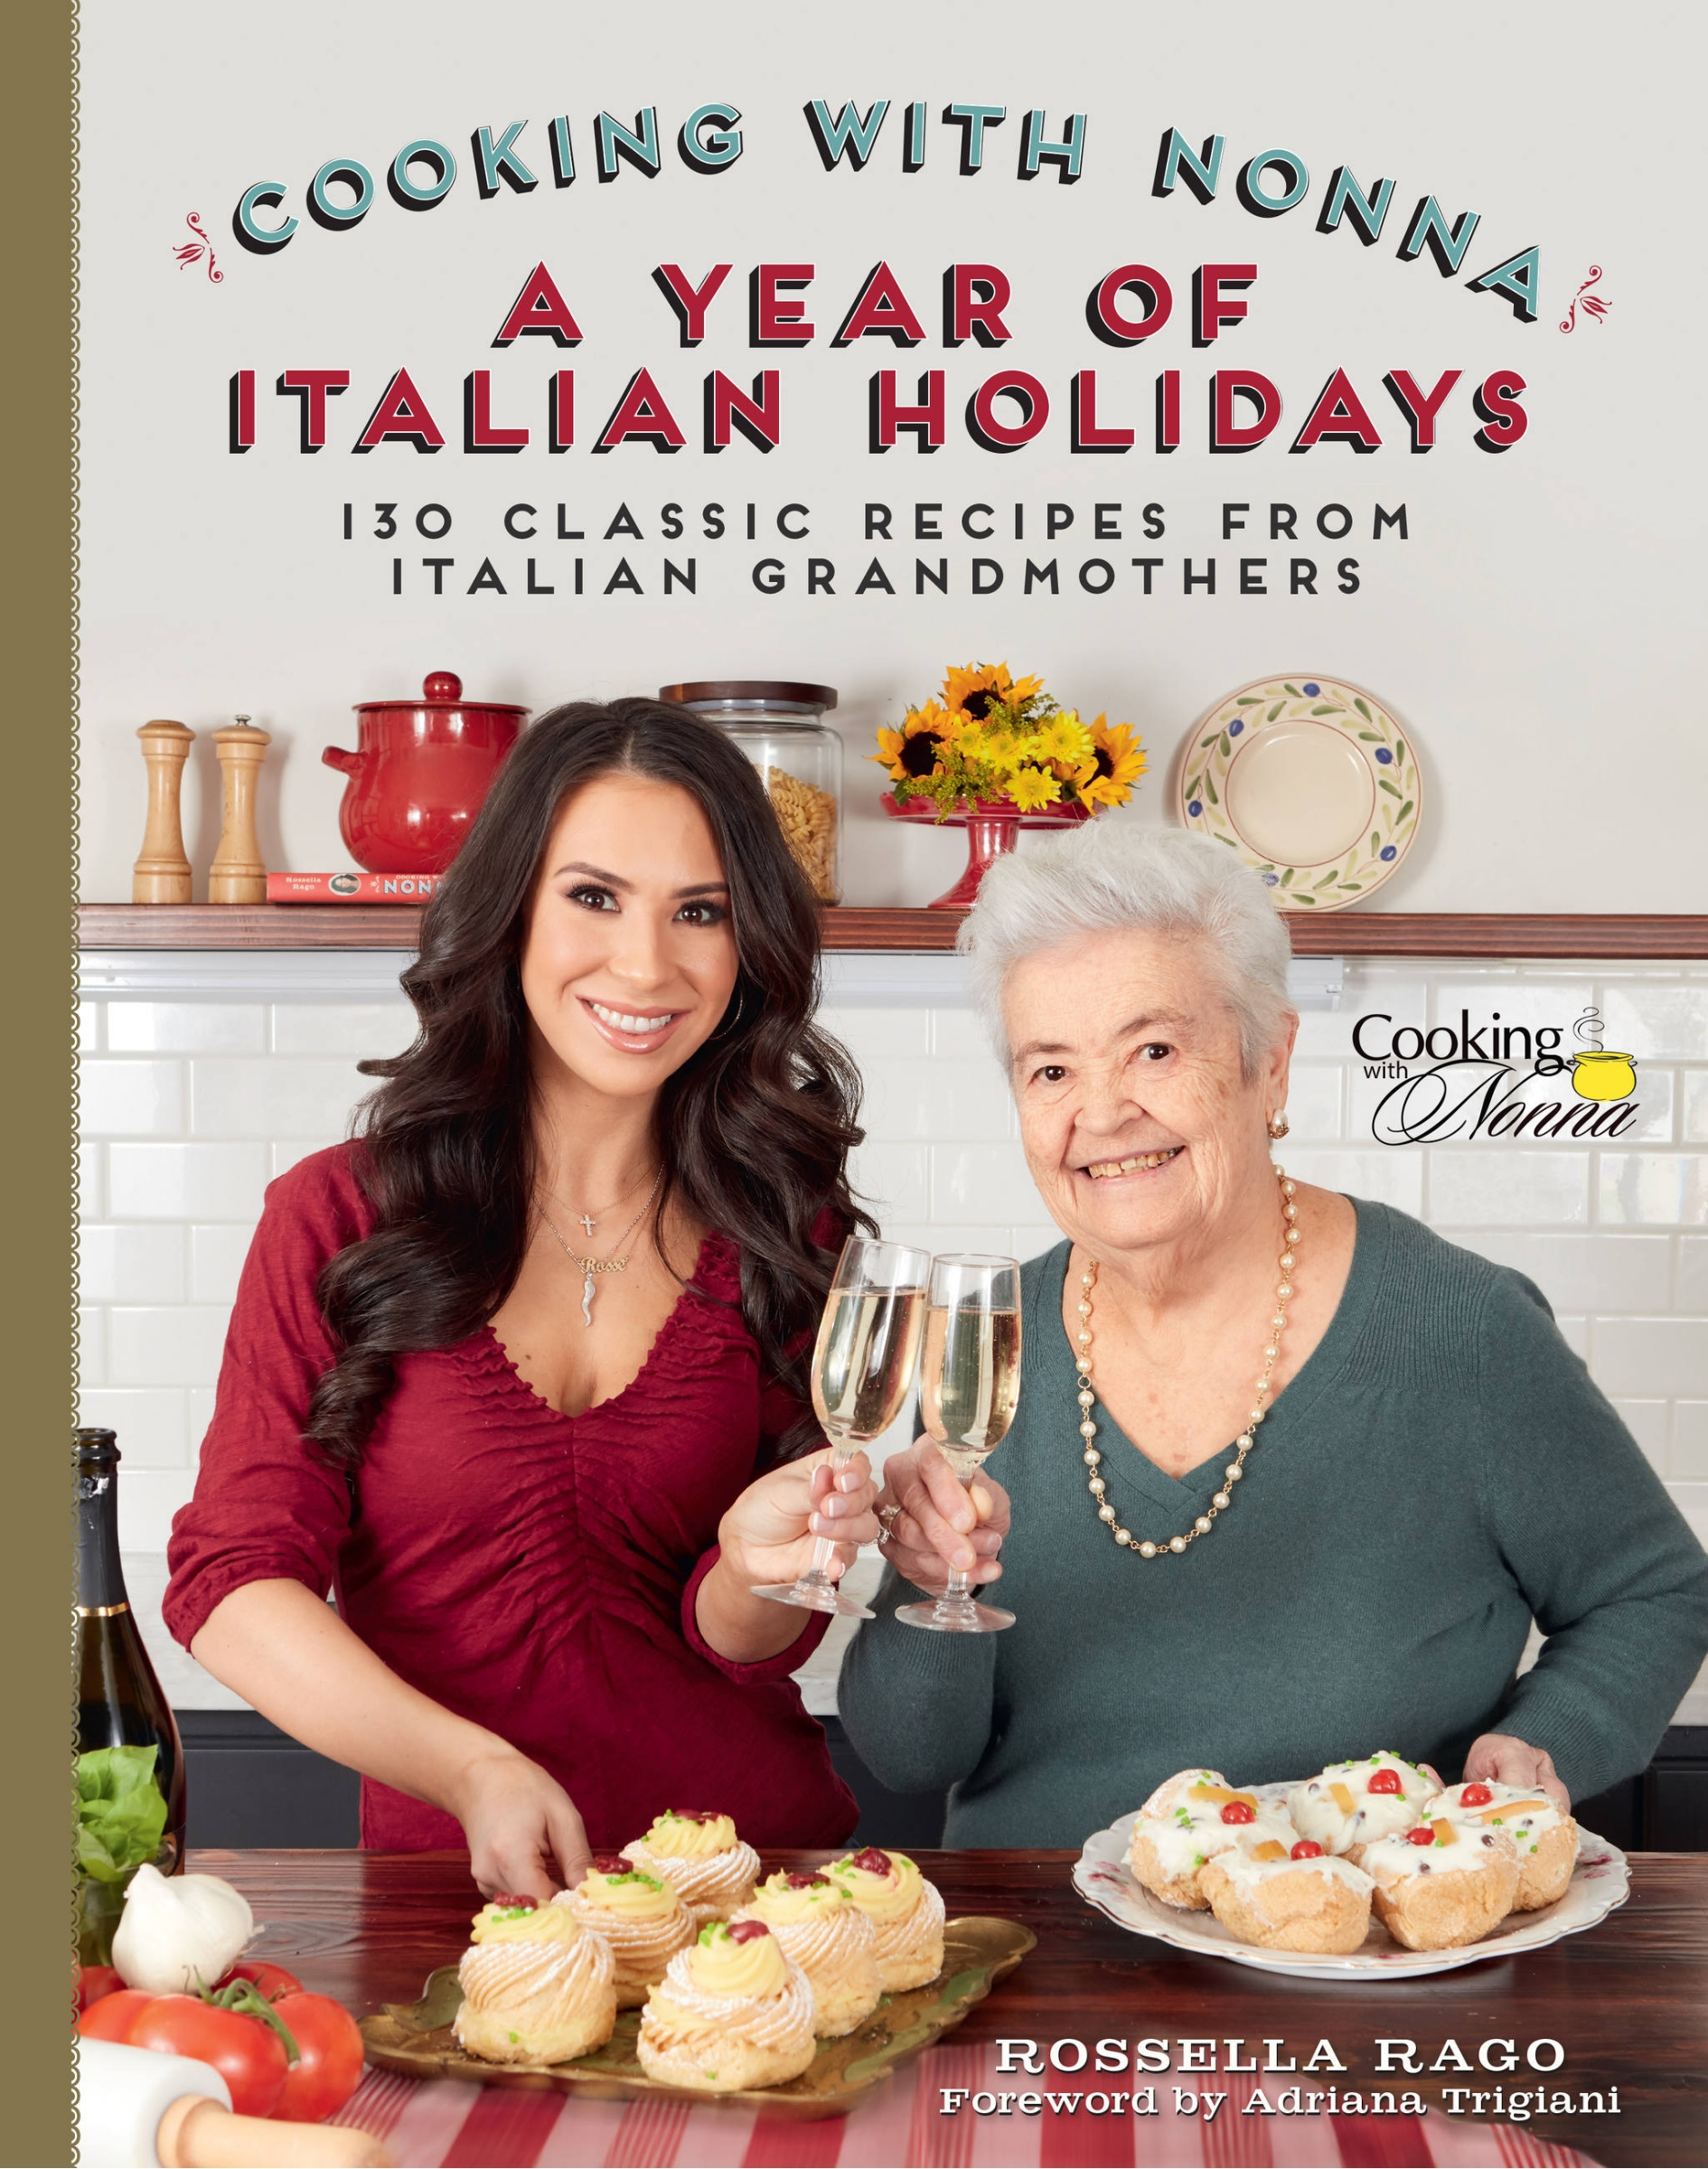 Cooking With Nonna: A Year of Italian Holidays by Rossella Rago